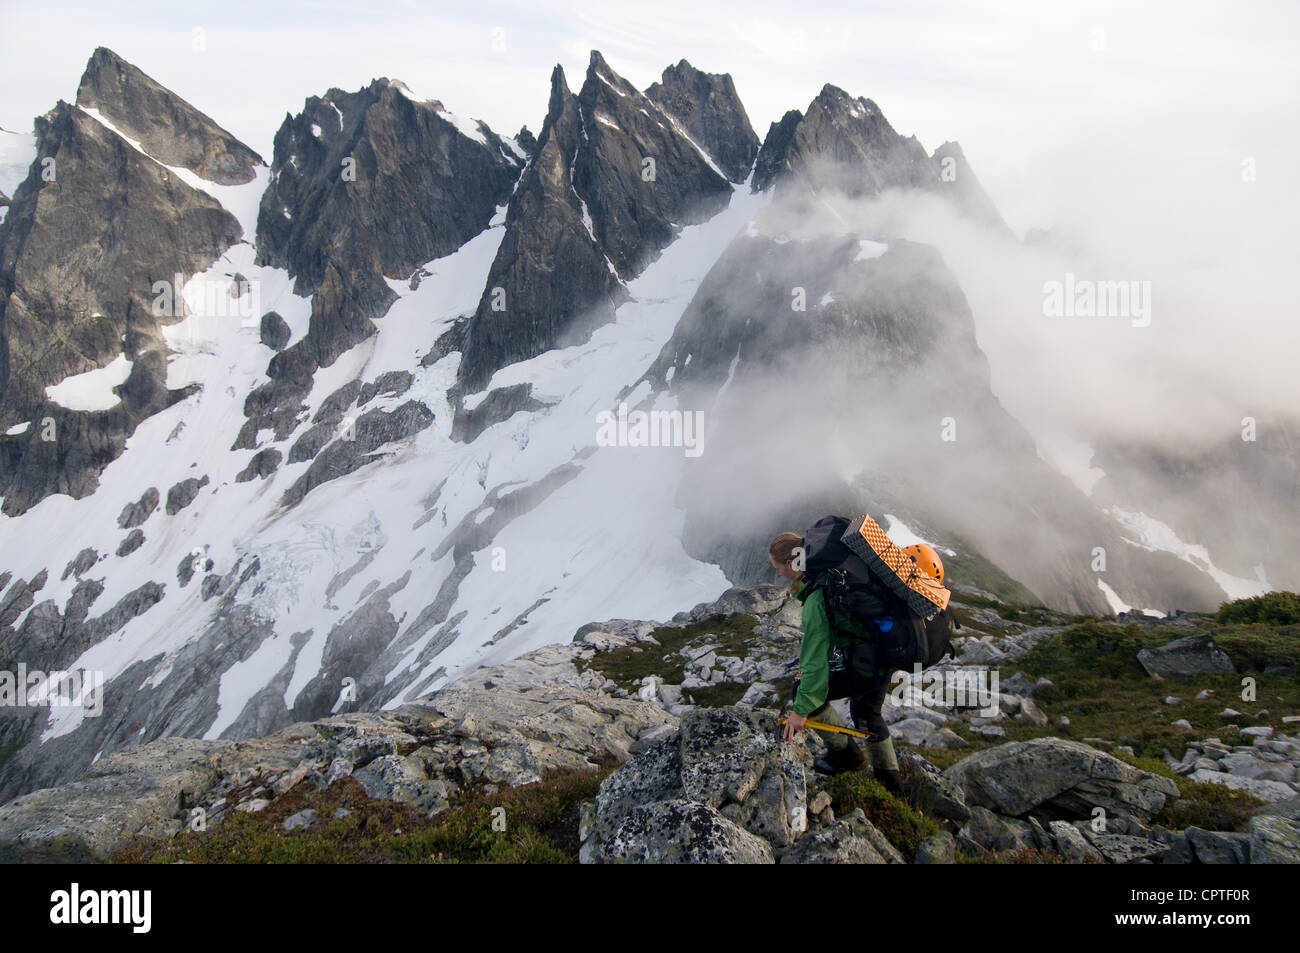 Female backpacker on ridge with fog, Picket Pass, North Cascades National Park, WA, USA - Stock Image